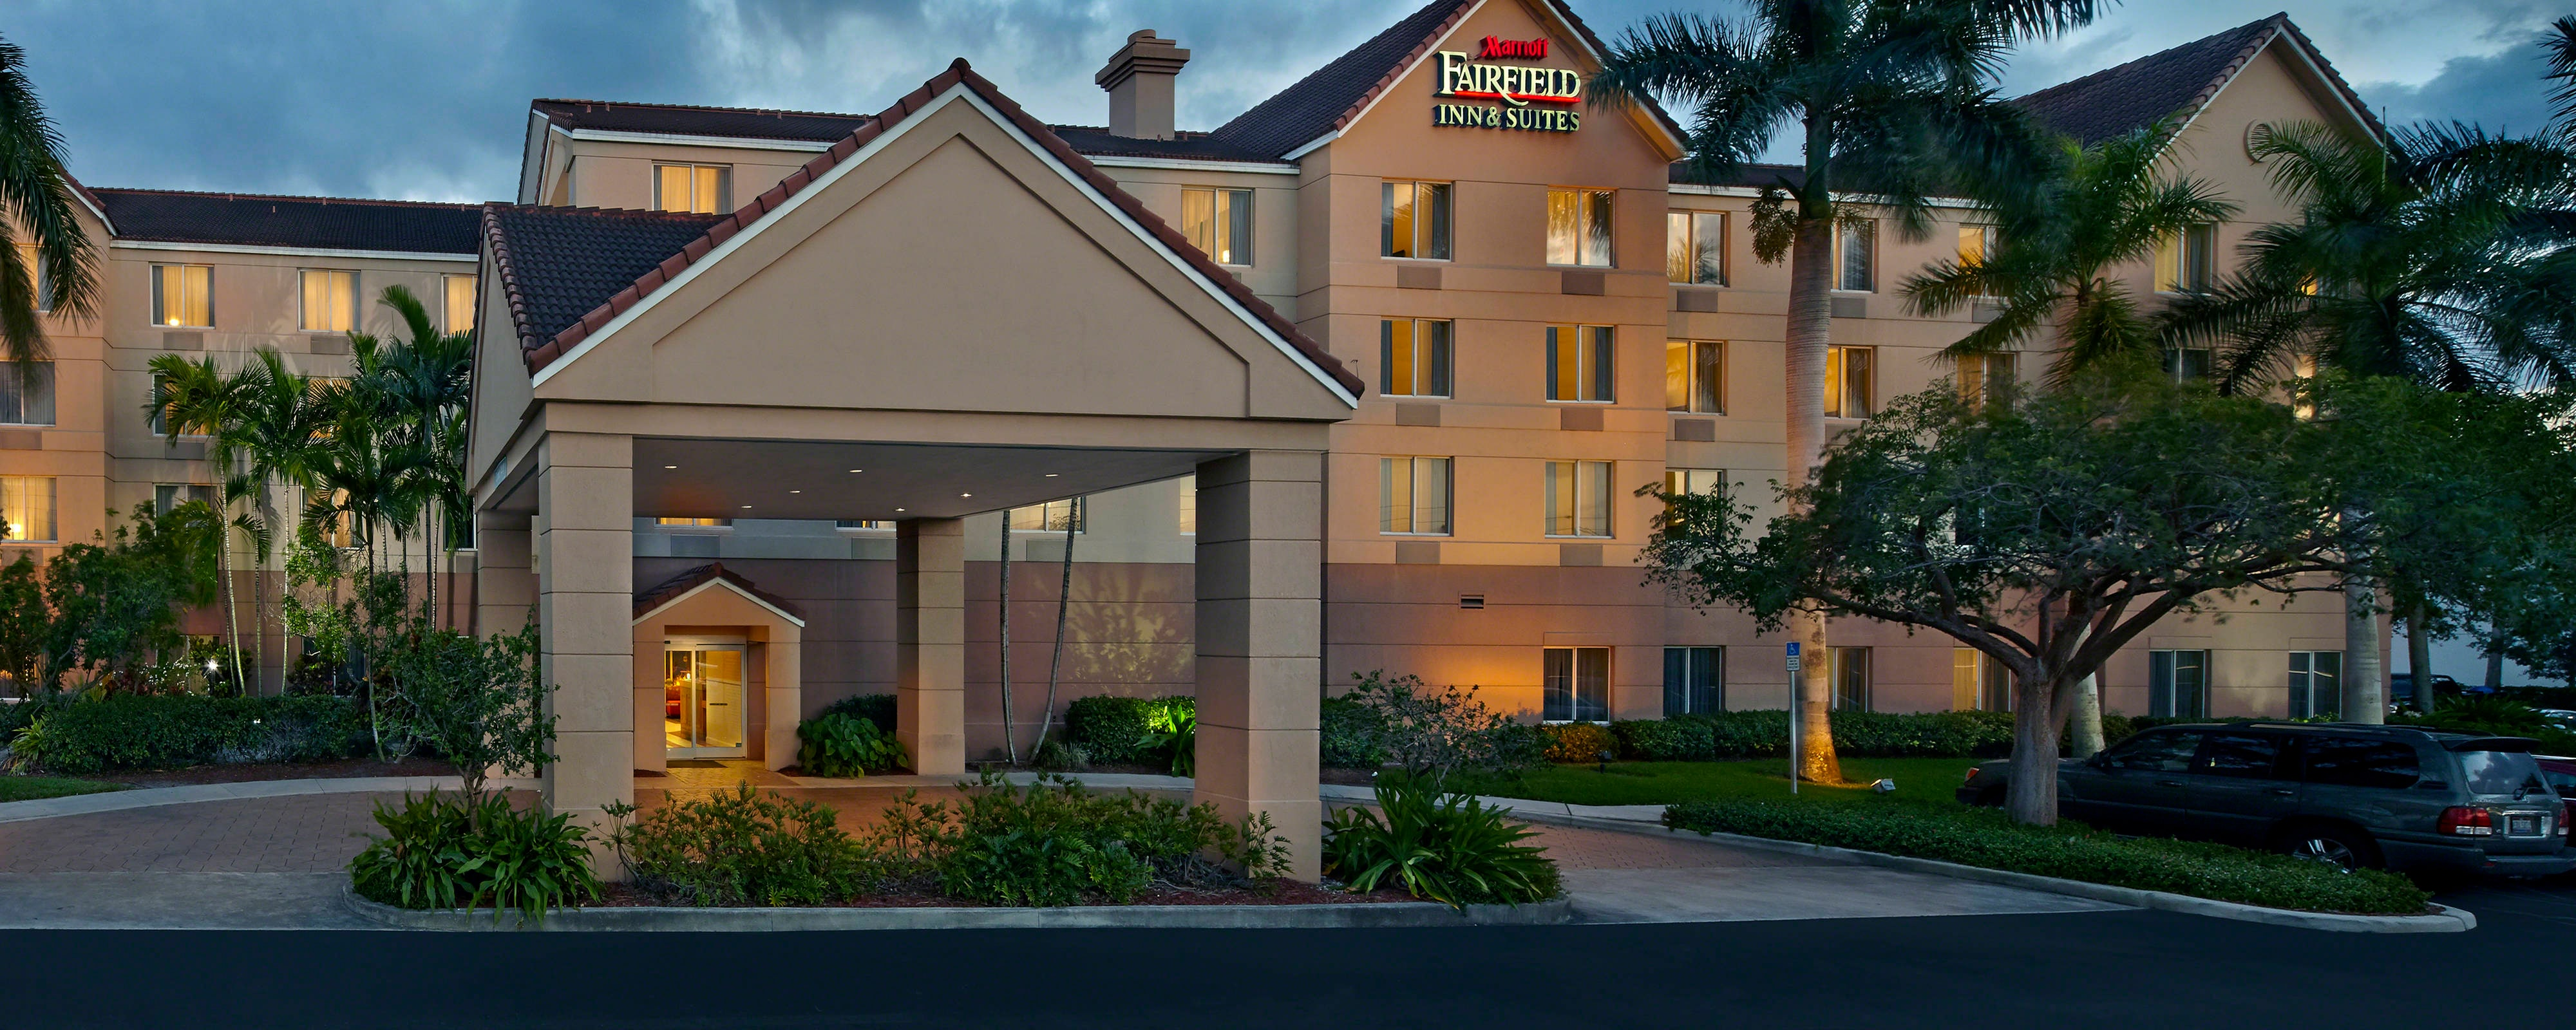 directions to living room theater boca raton best neutral paint colors 2018 fairfield inn suites by marriott airport and